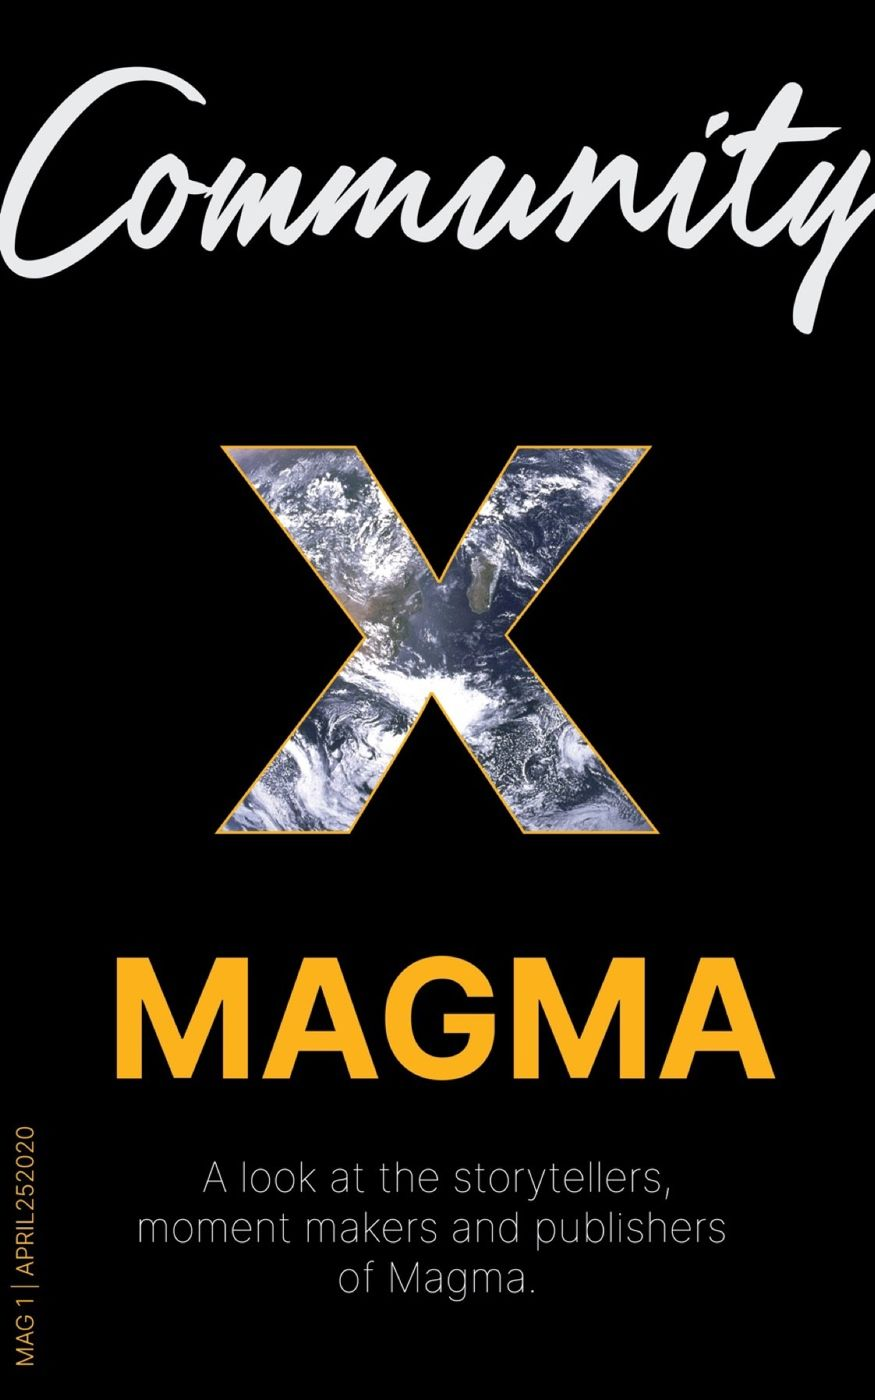 Welcome to Community X Magma, a publication highlighting the users that inspire us.   Within these MAGS we will introduce you to the individuals, accounts and brands that make the powerful, beautiful and meaningful content that we all love on Magma possible.